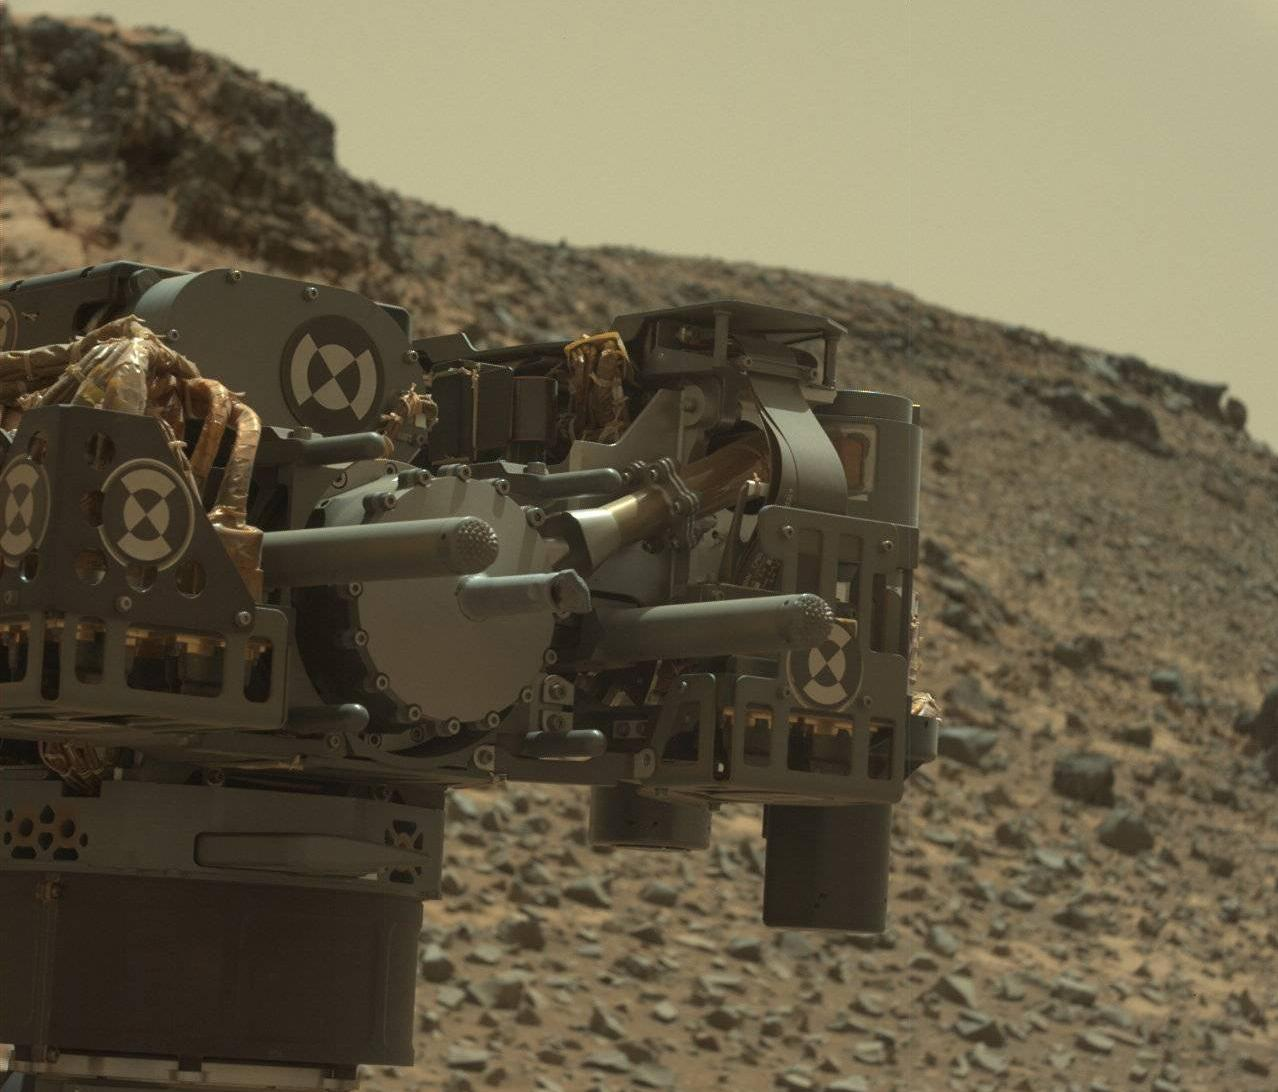 Mars Rover Curiosity at Telegraph Peak